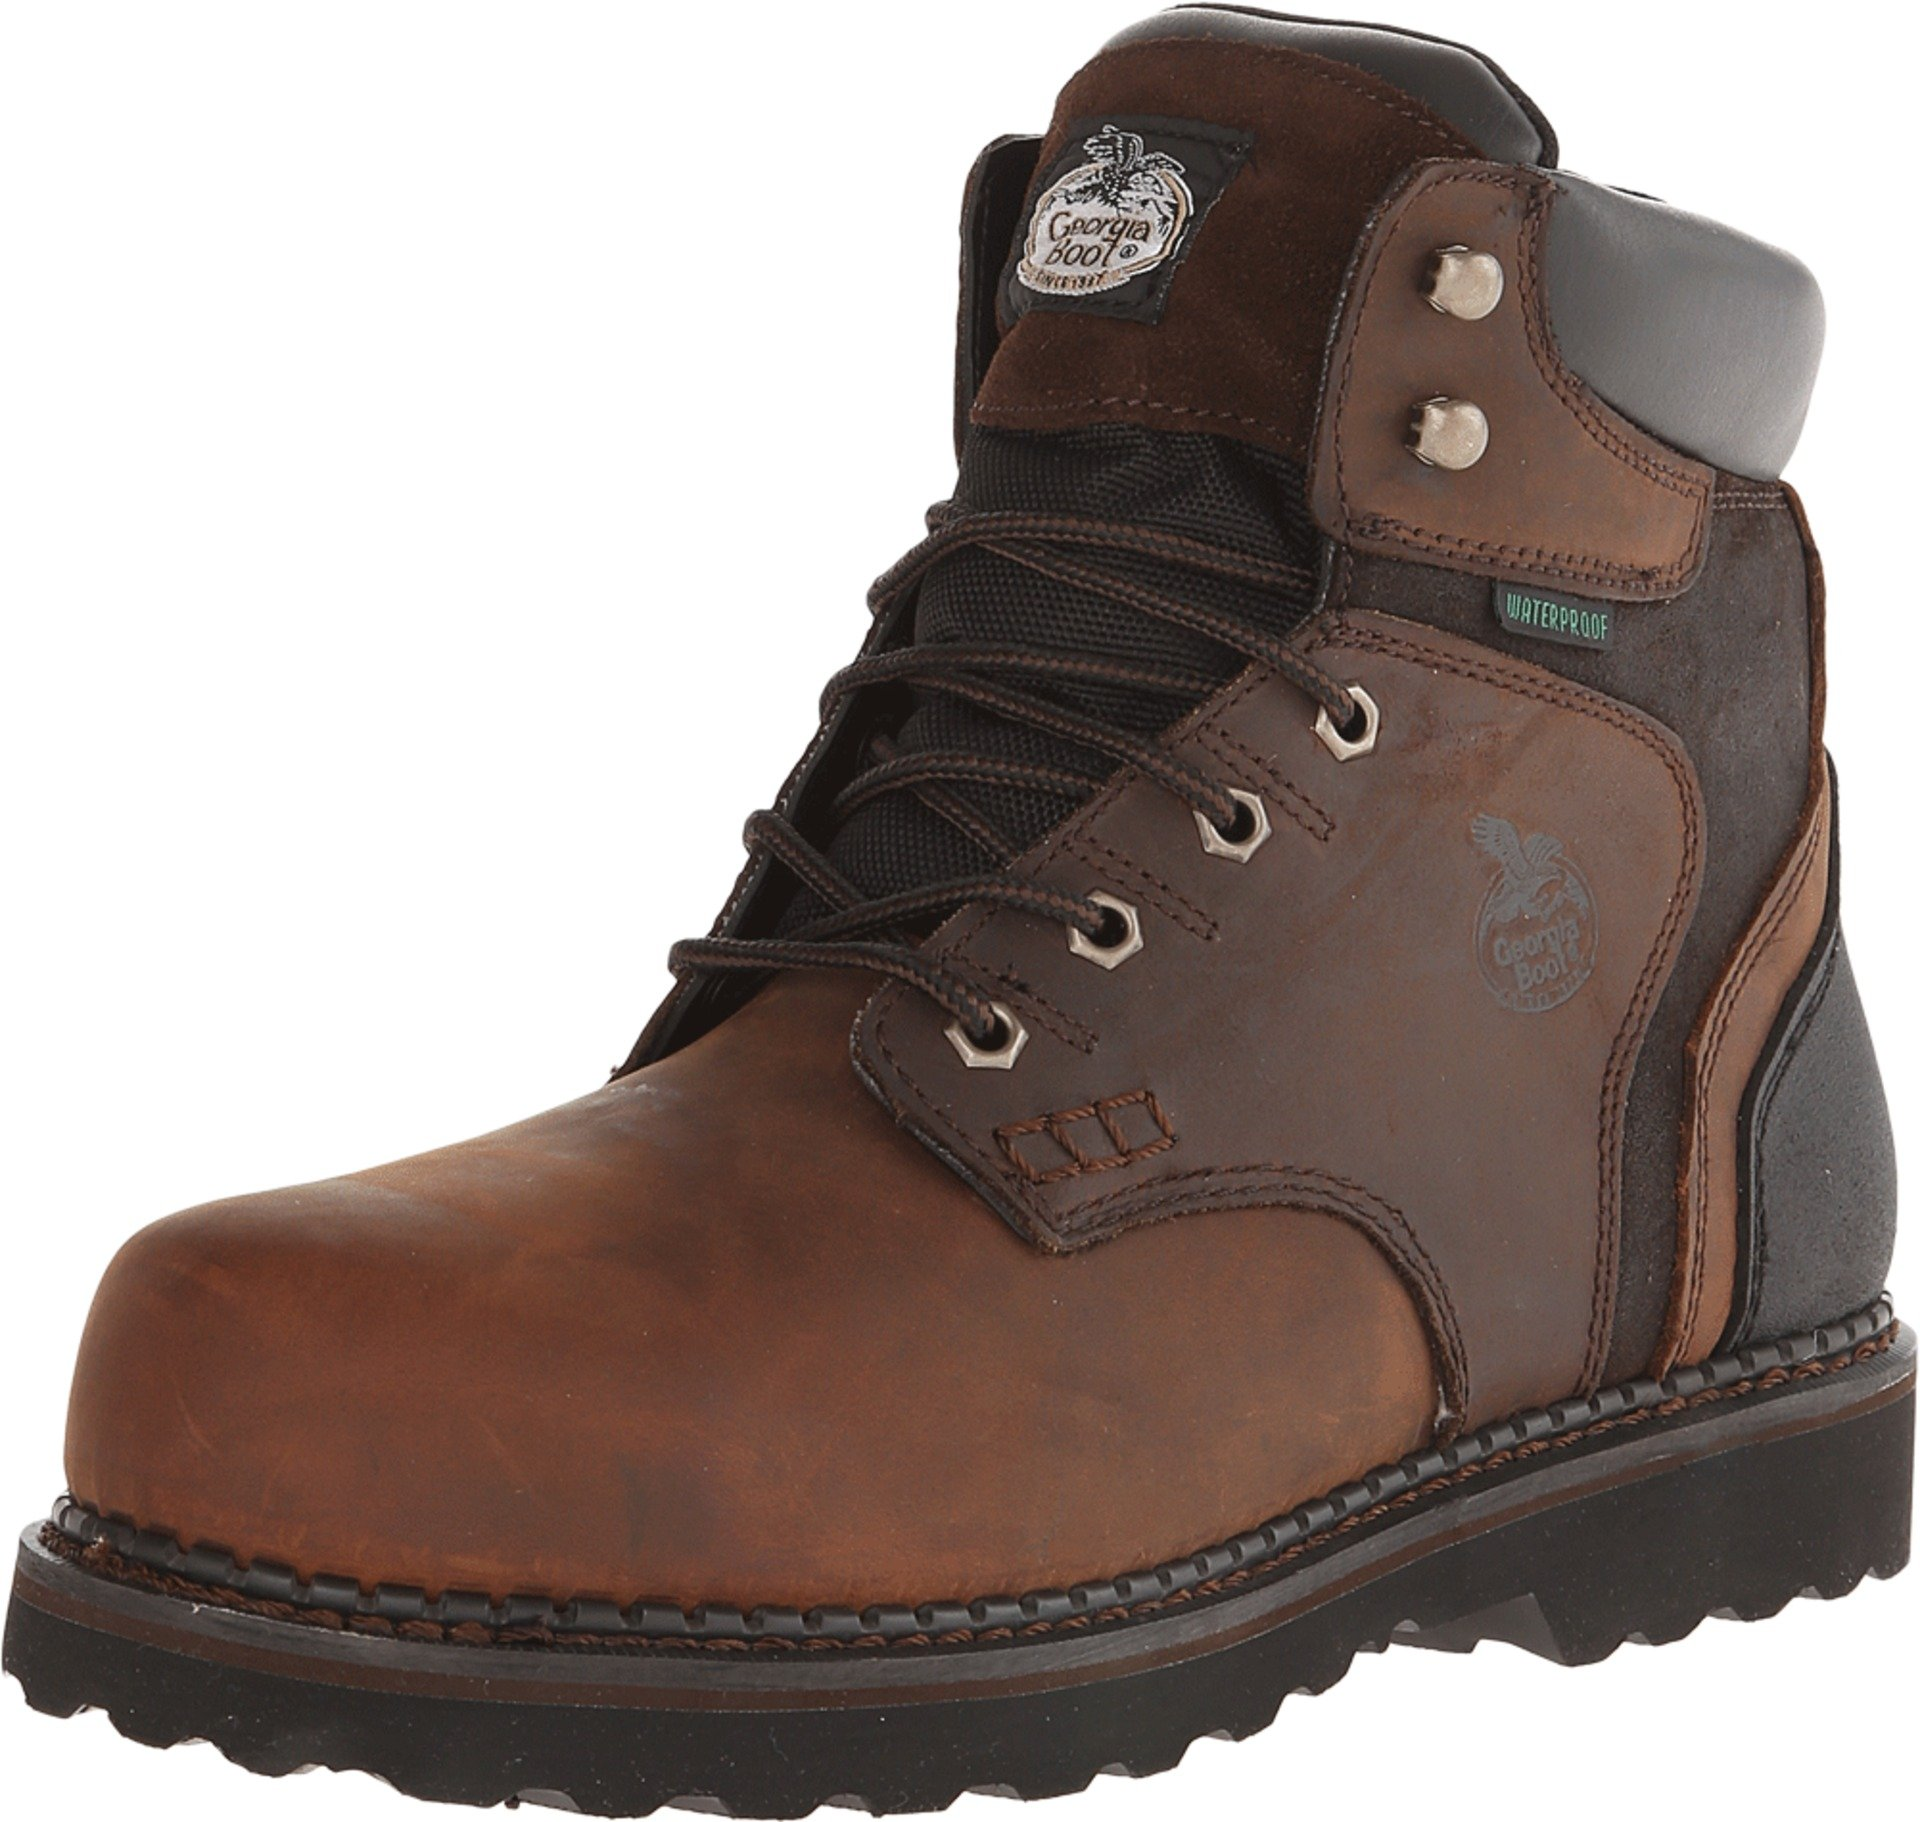 Georgia Boot Men's Brookville 6 Inch Work Shoe, Dark Brown, 10 M US by Georgia (Image #1)